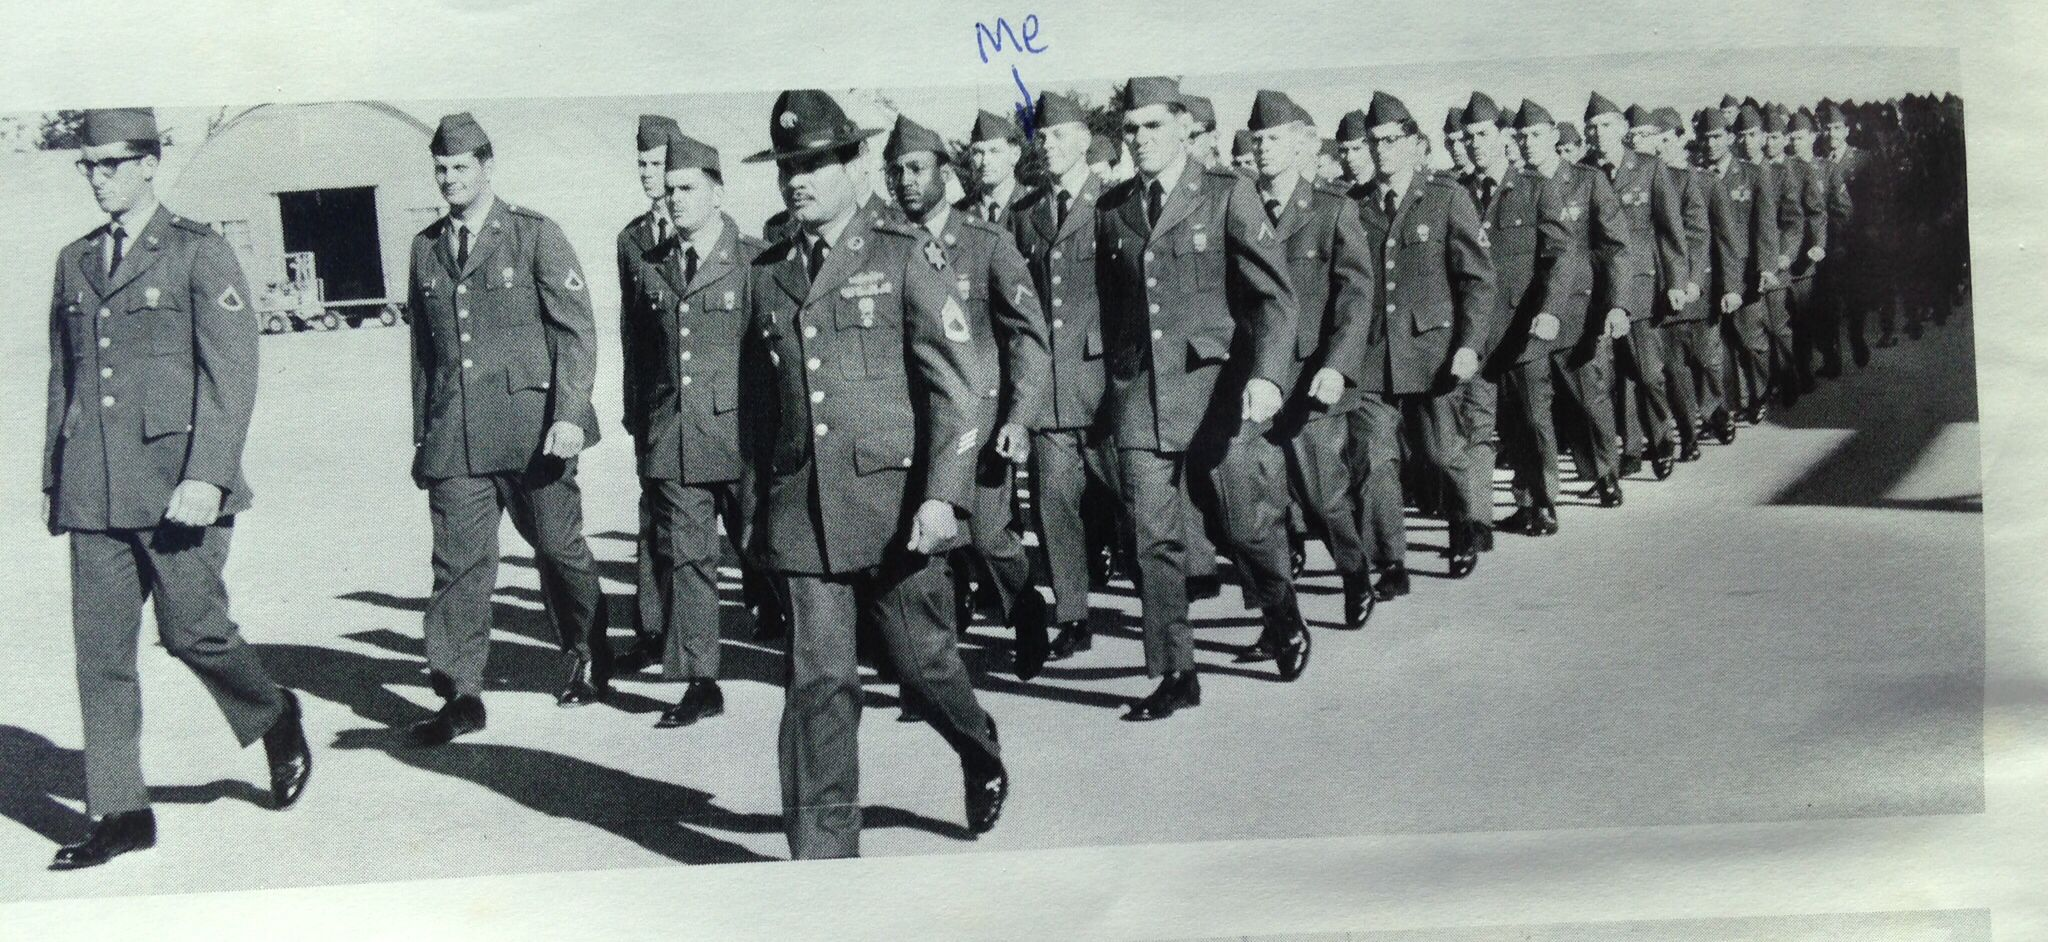 My platoon with Company A-1-1 heading out to the Parade Field, for Graduation ceremonies from Basic Training at Fort Ord, CA